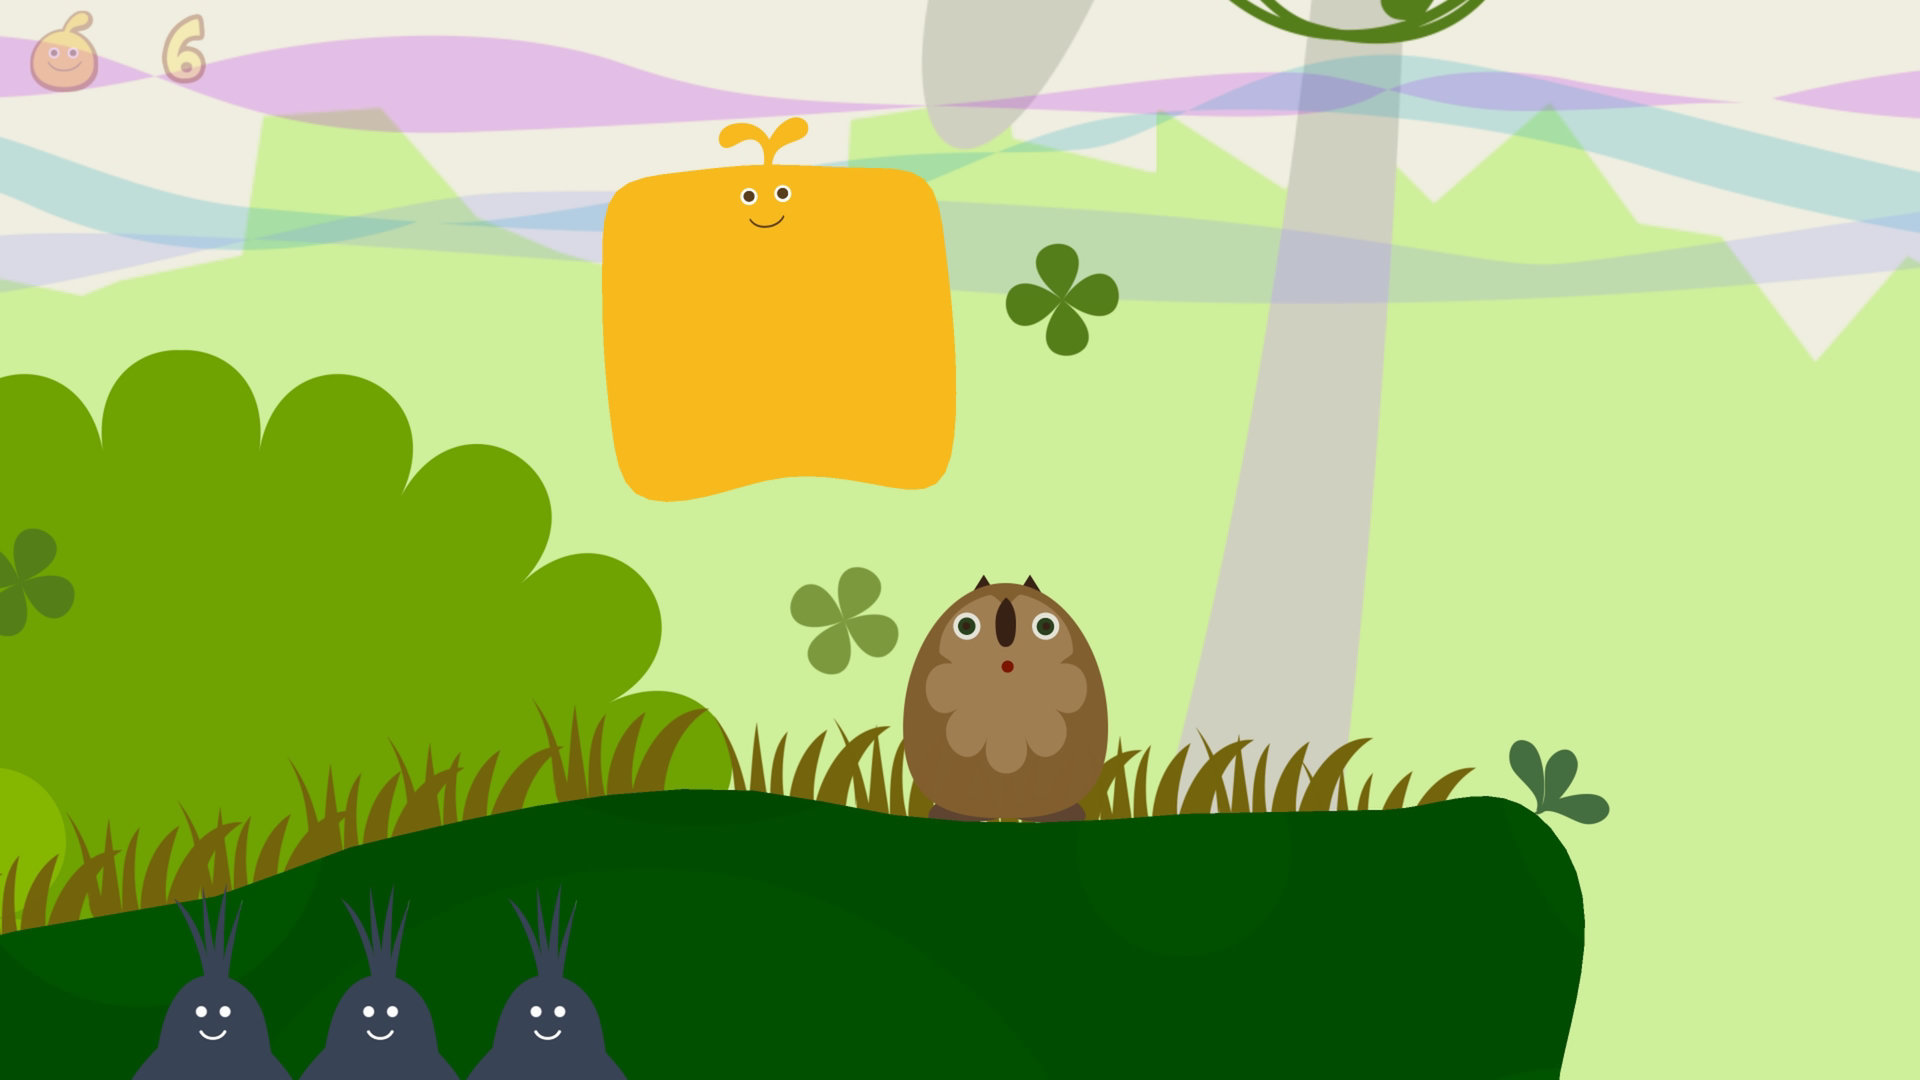 locoroco-remastered-screen-06-ps4-us-02m